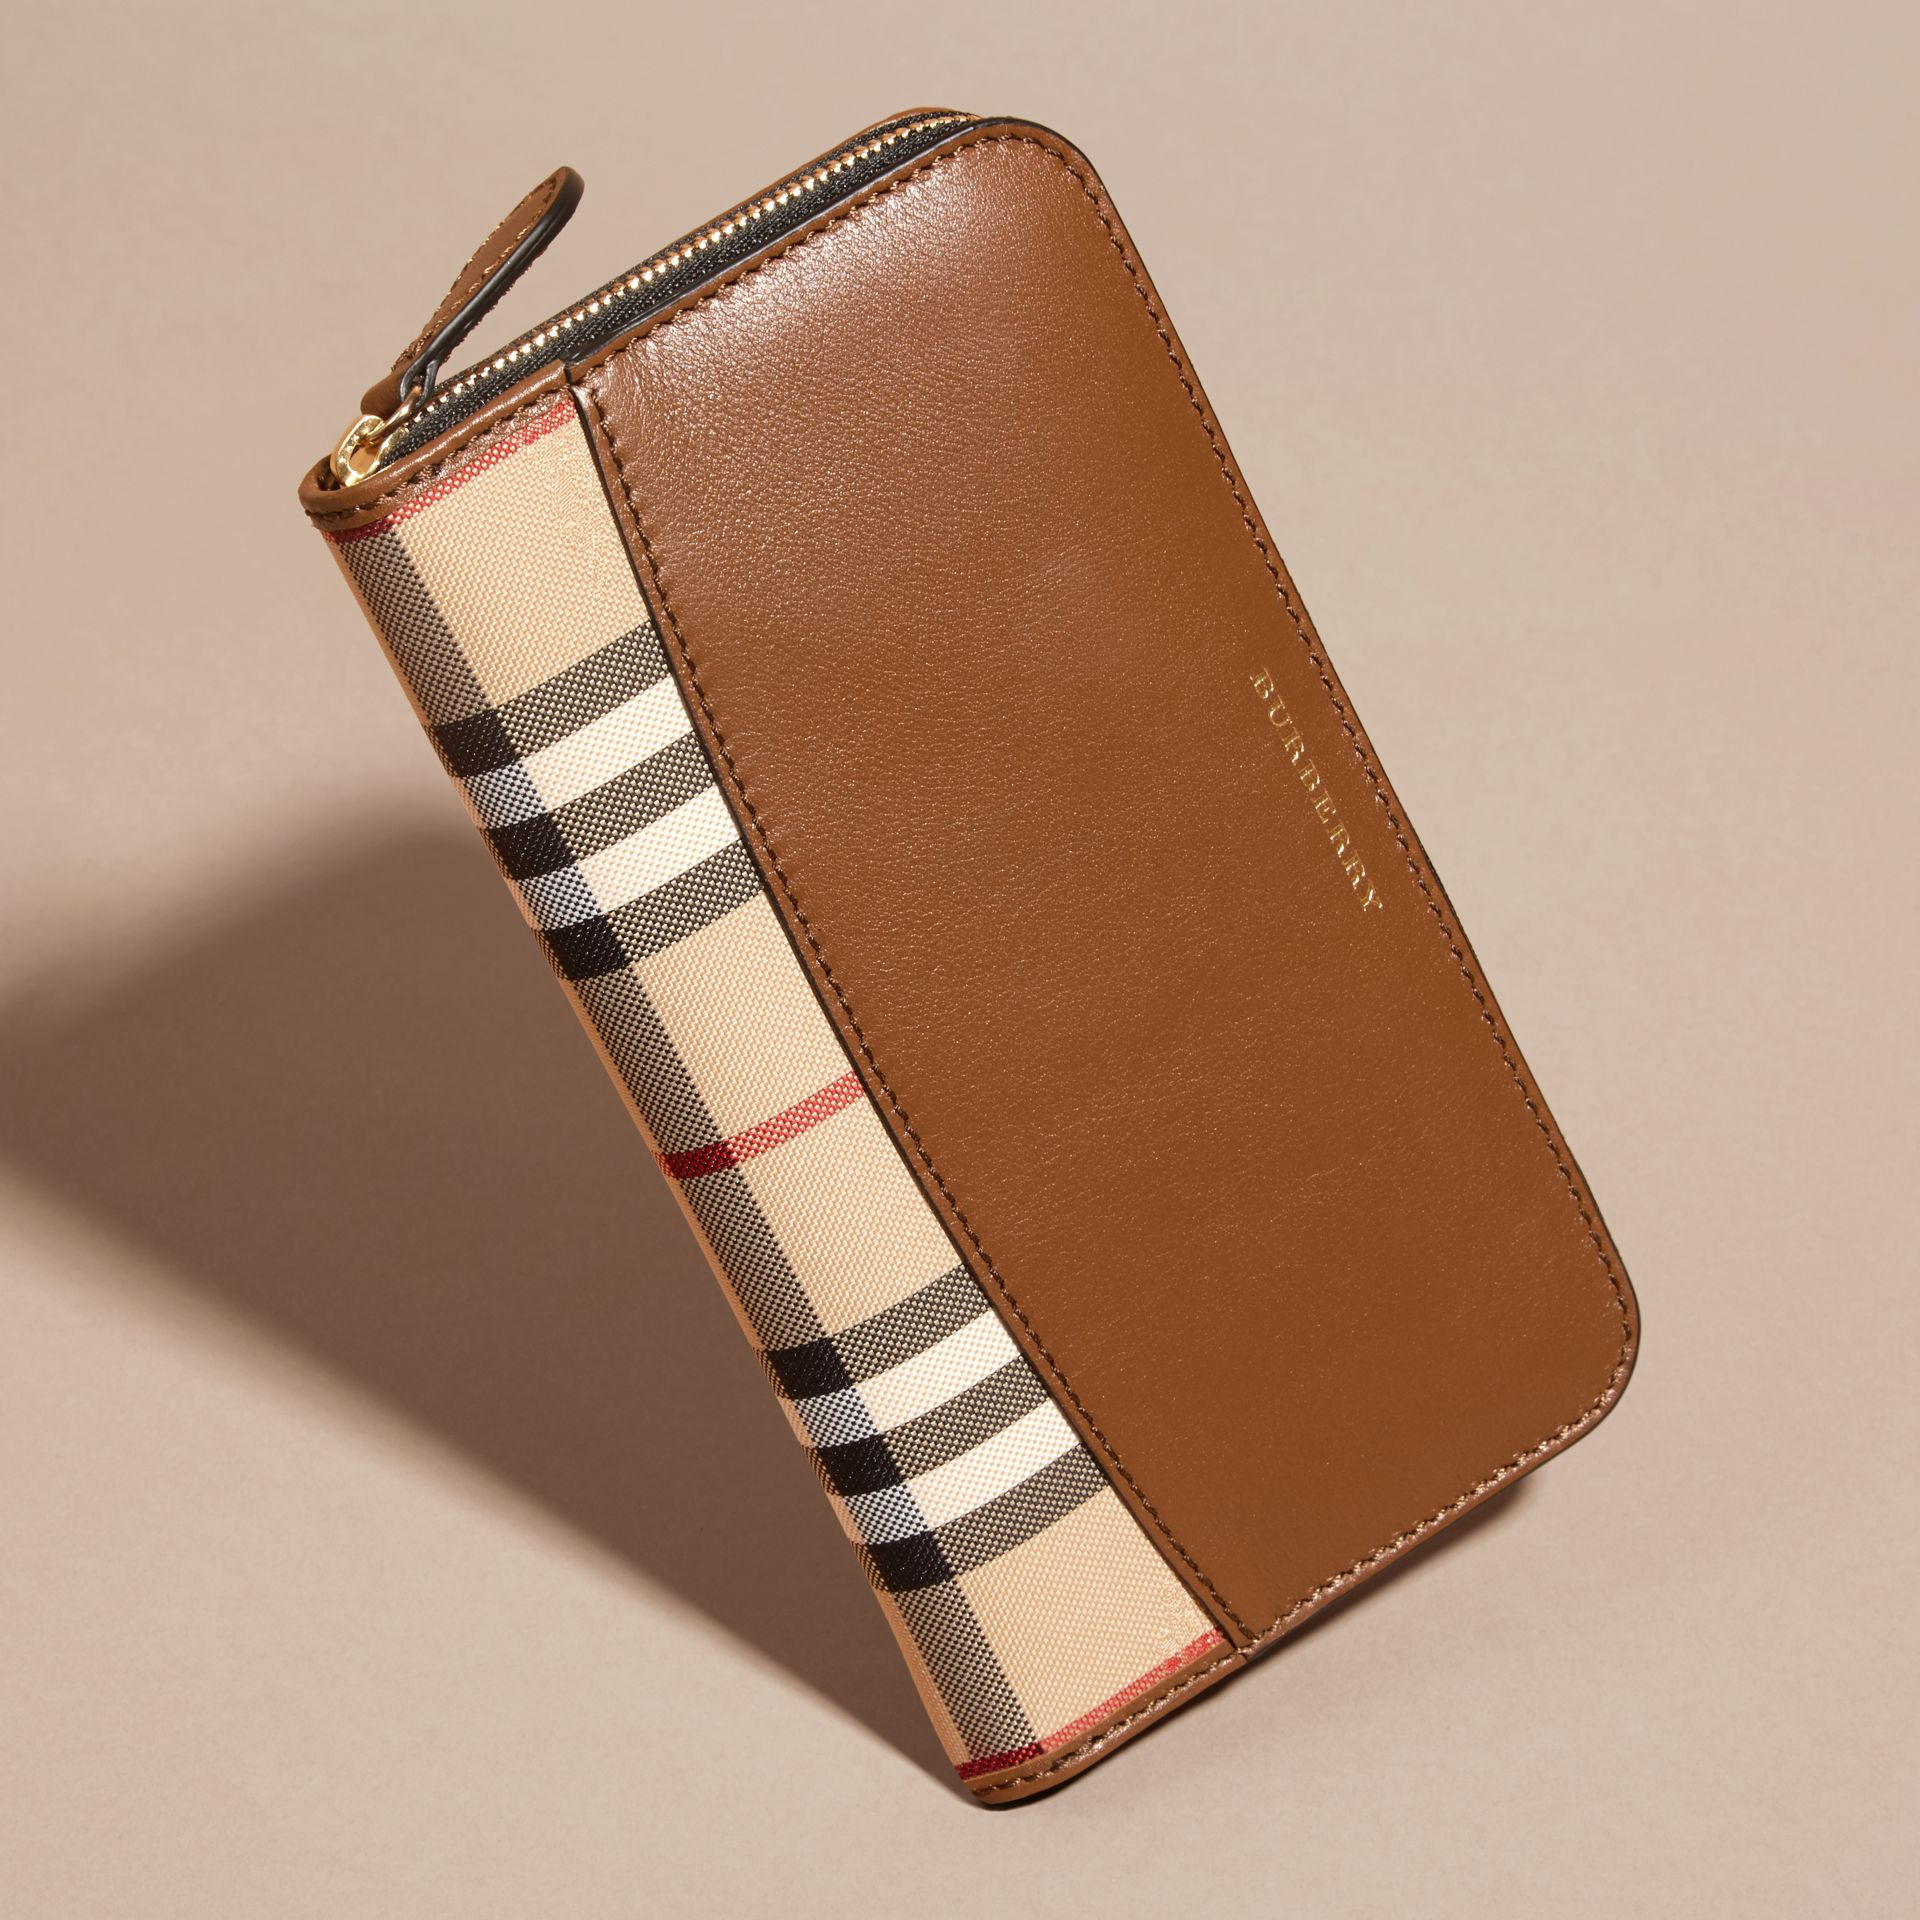 Horseferry Check and Leather Ziparound Wallet in Tan - Women | Burberry - gallery image 3